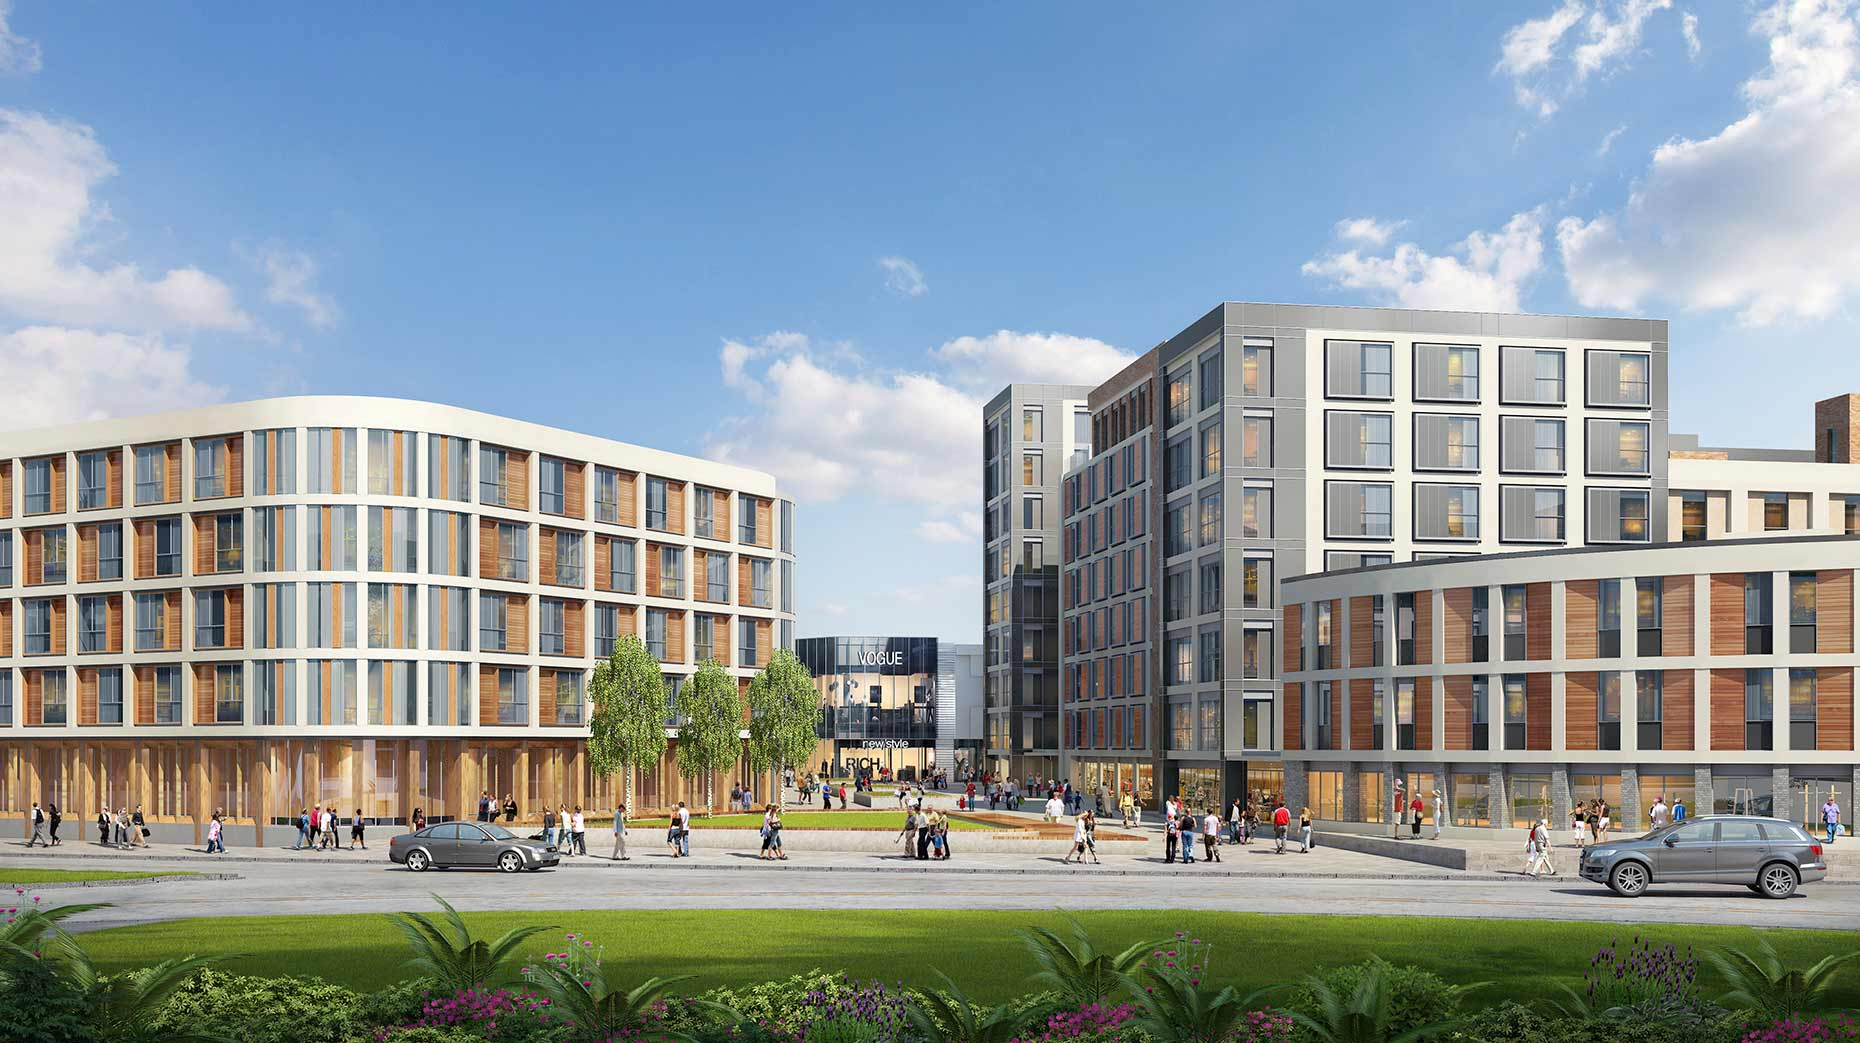 A view of the new student and private accommodation from Tritton Road.